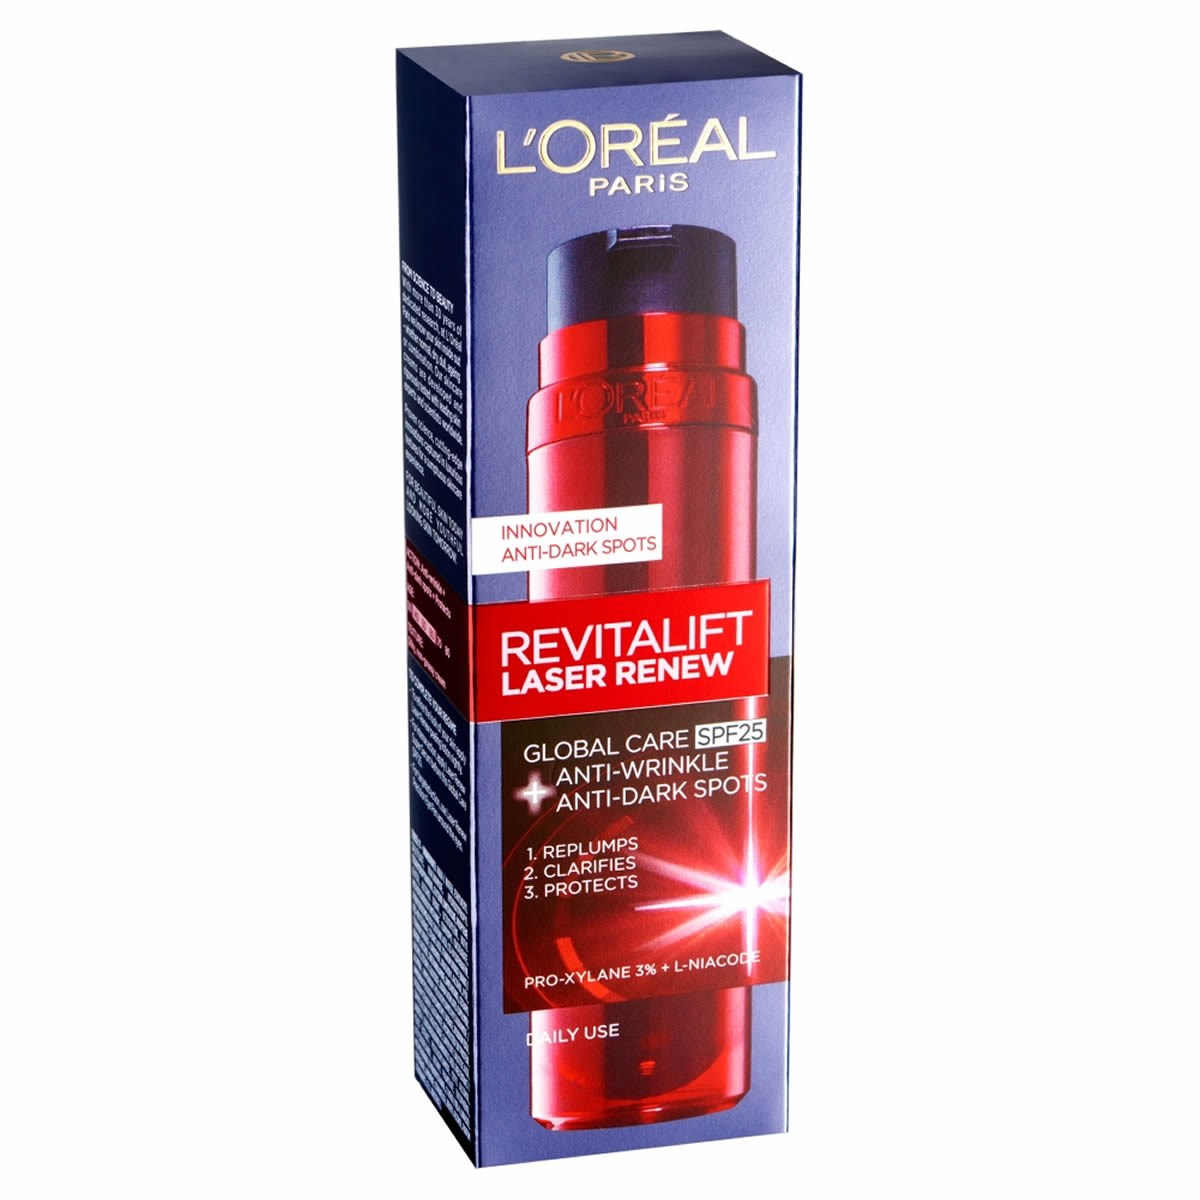 L'Oreal Paris Revitalift Laser Renew Global Care SPF25